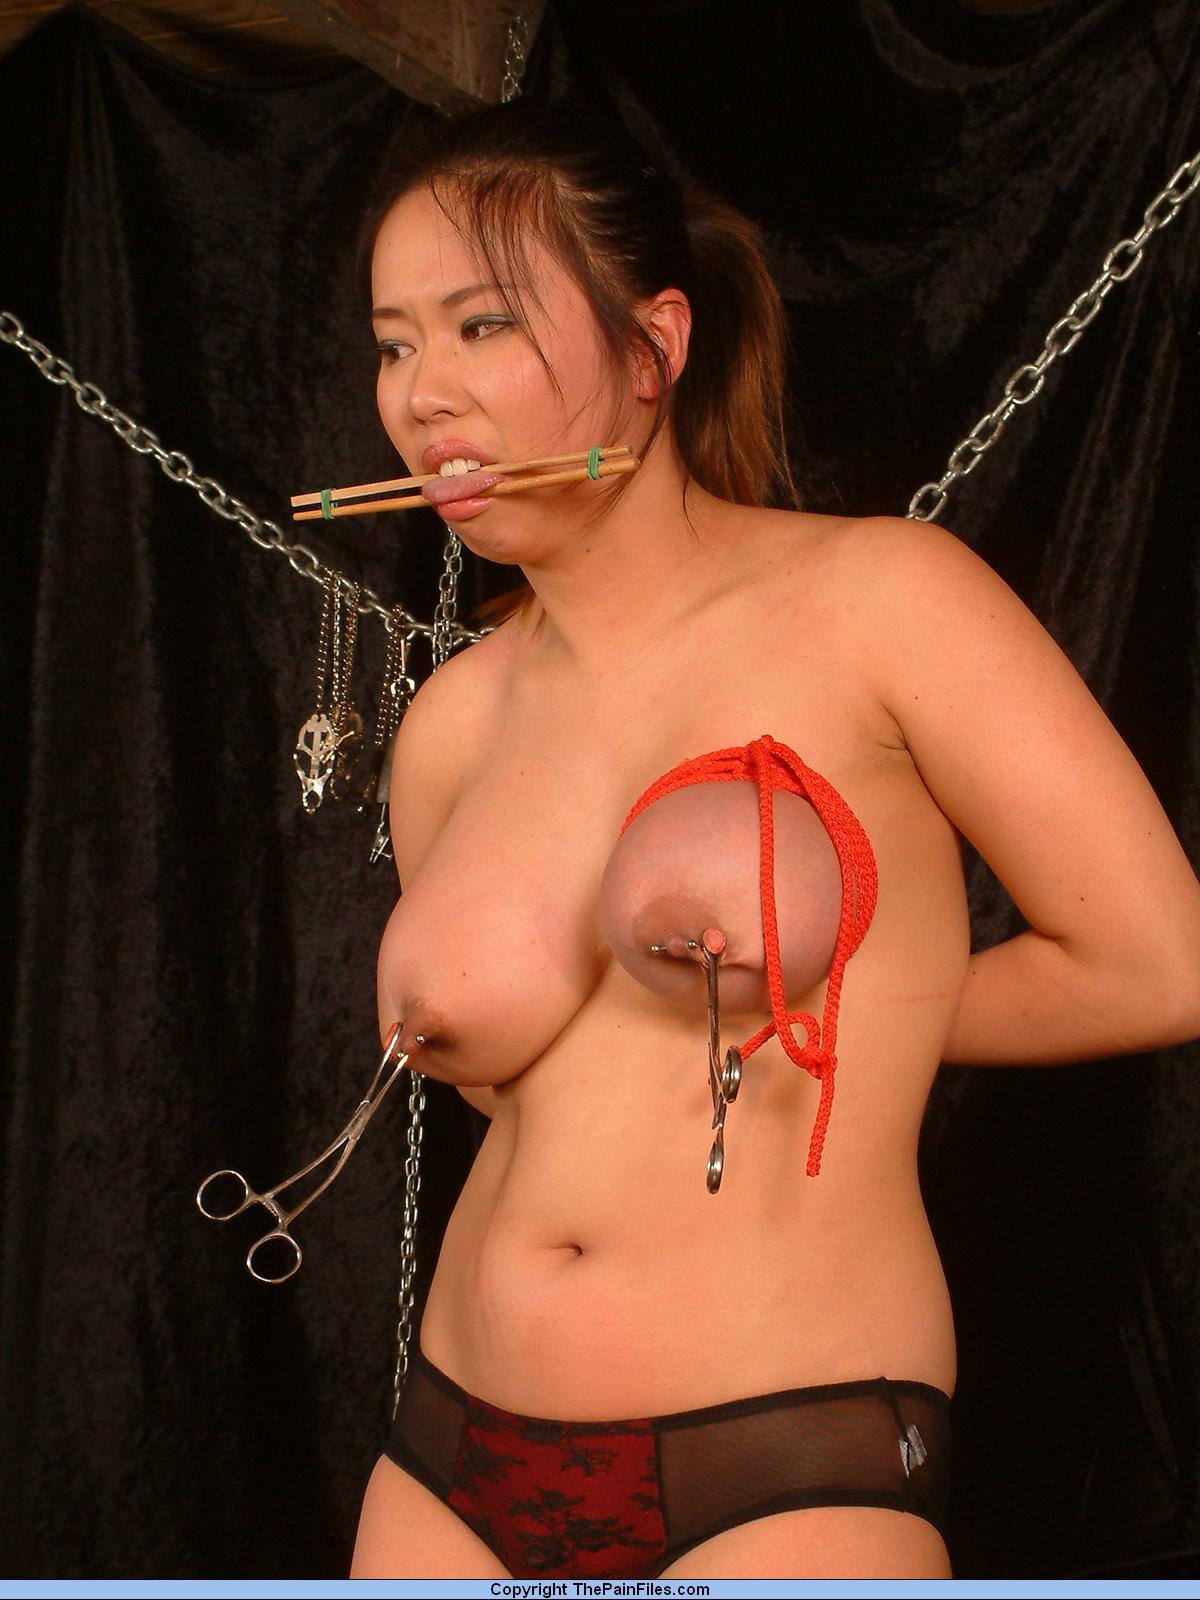 Japanese Bdsm Of Tigerr | Love And Sex